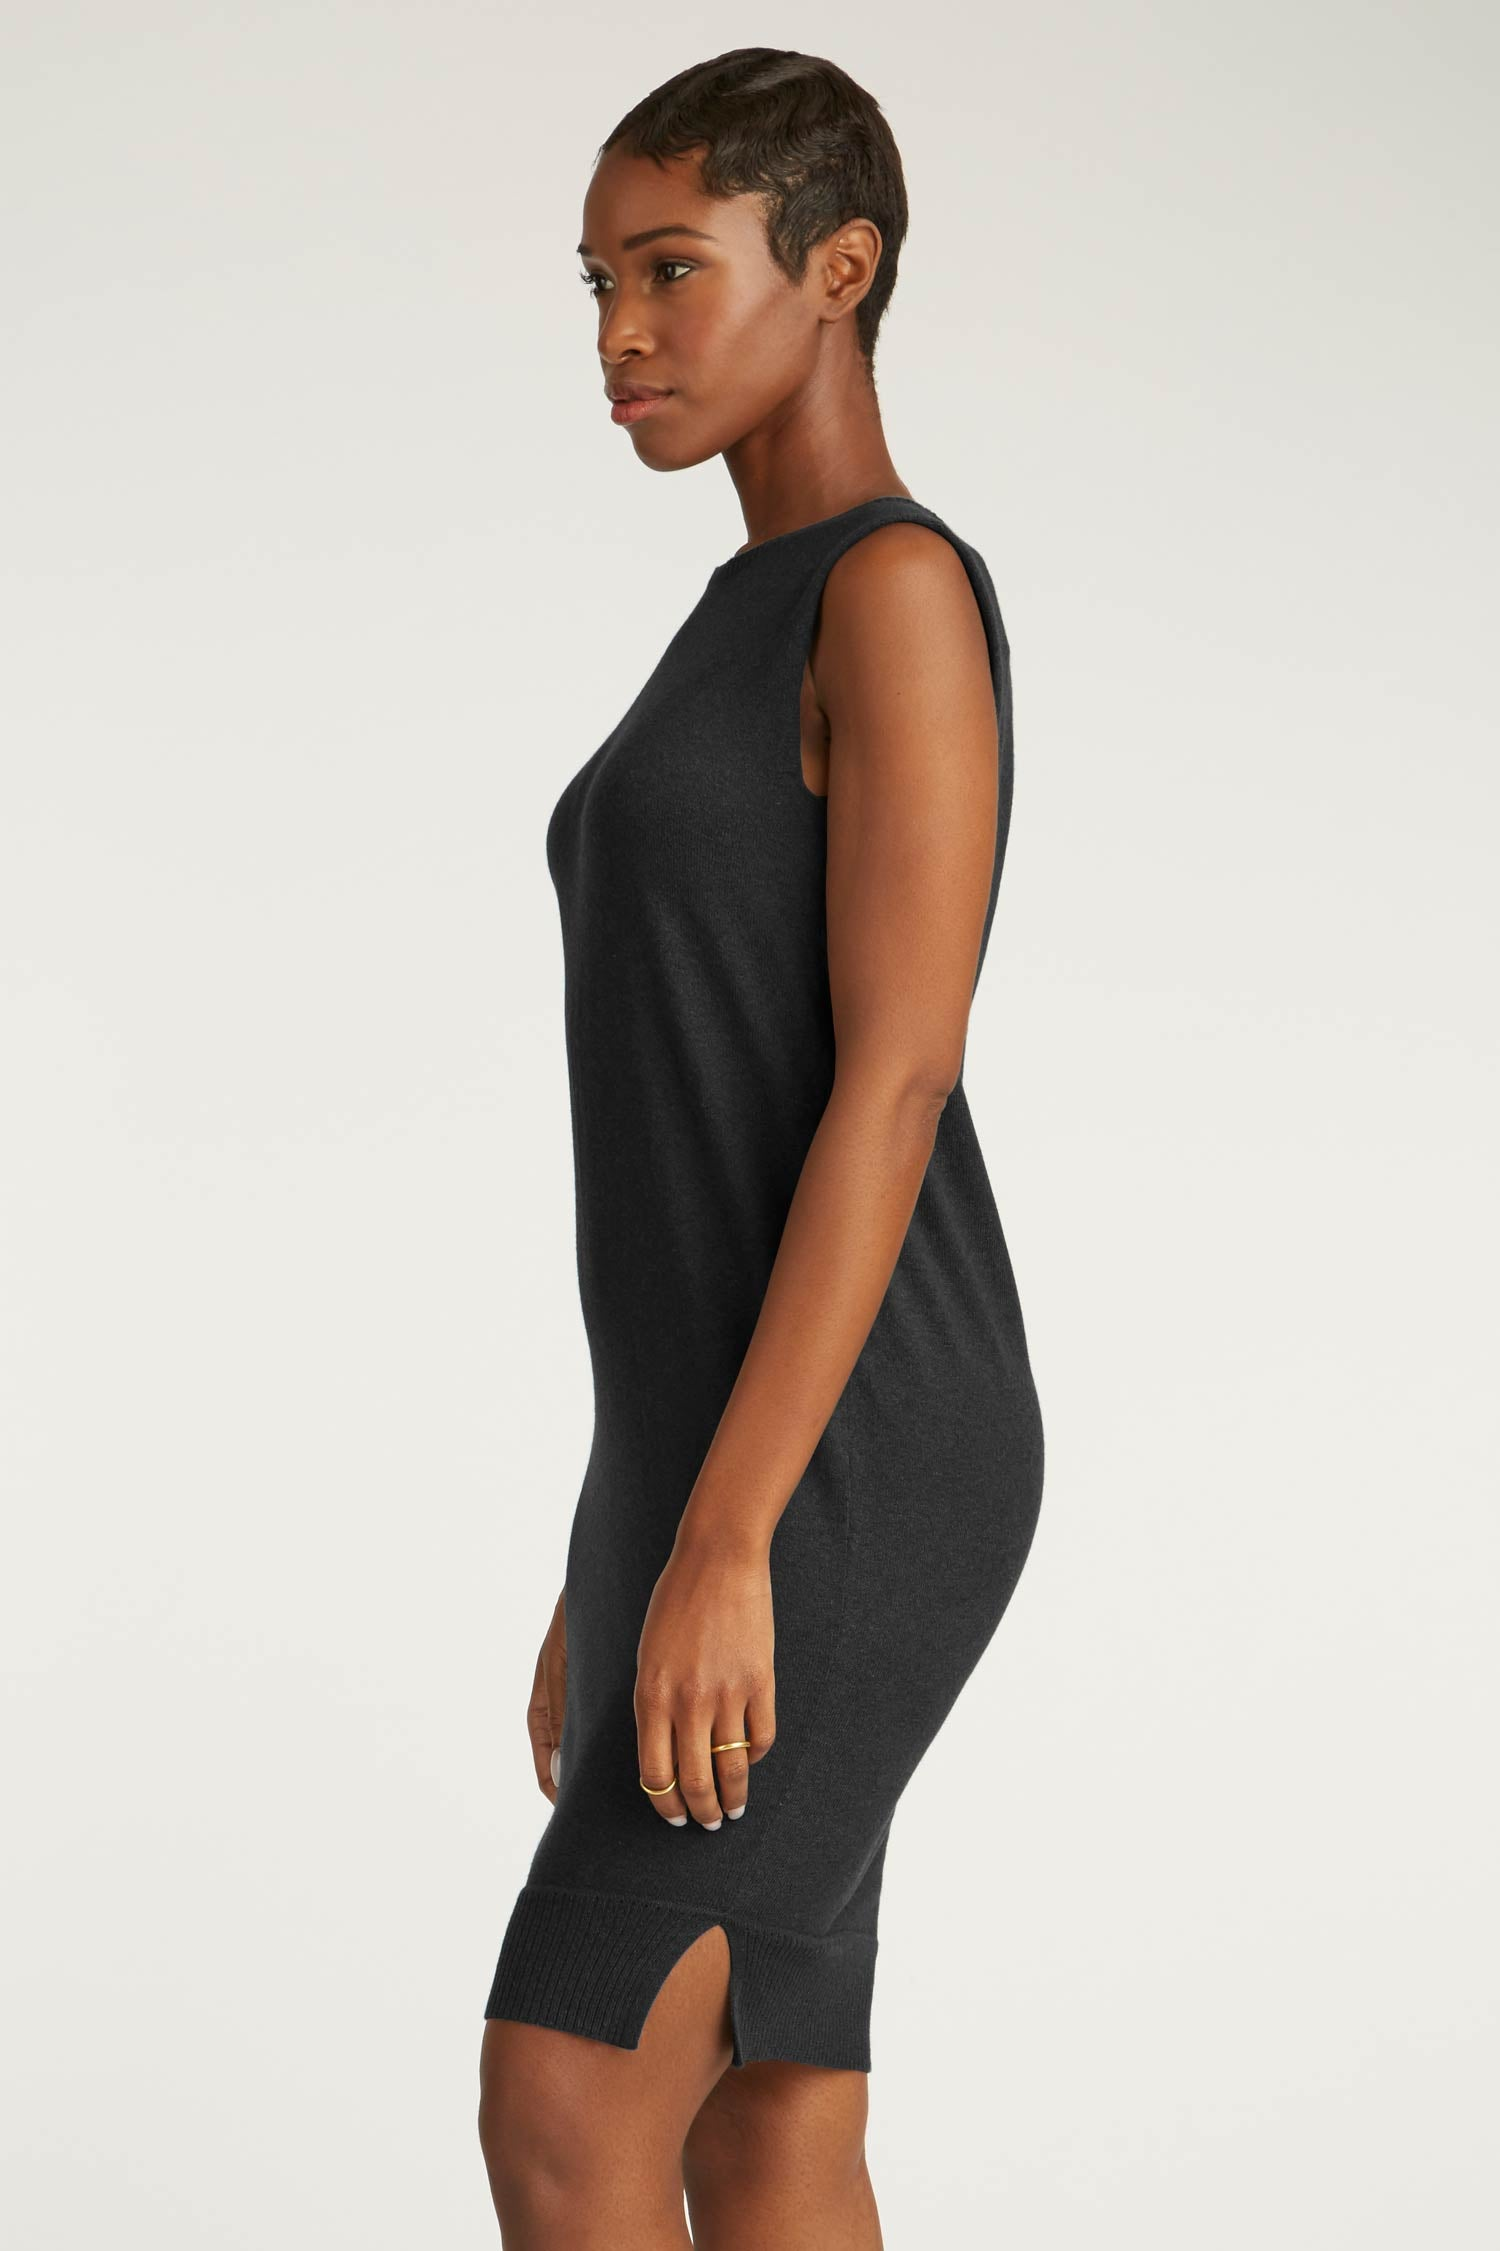 Womens Organic Cotton Dress | Black Knit Draped Dress | Indigenous